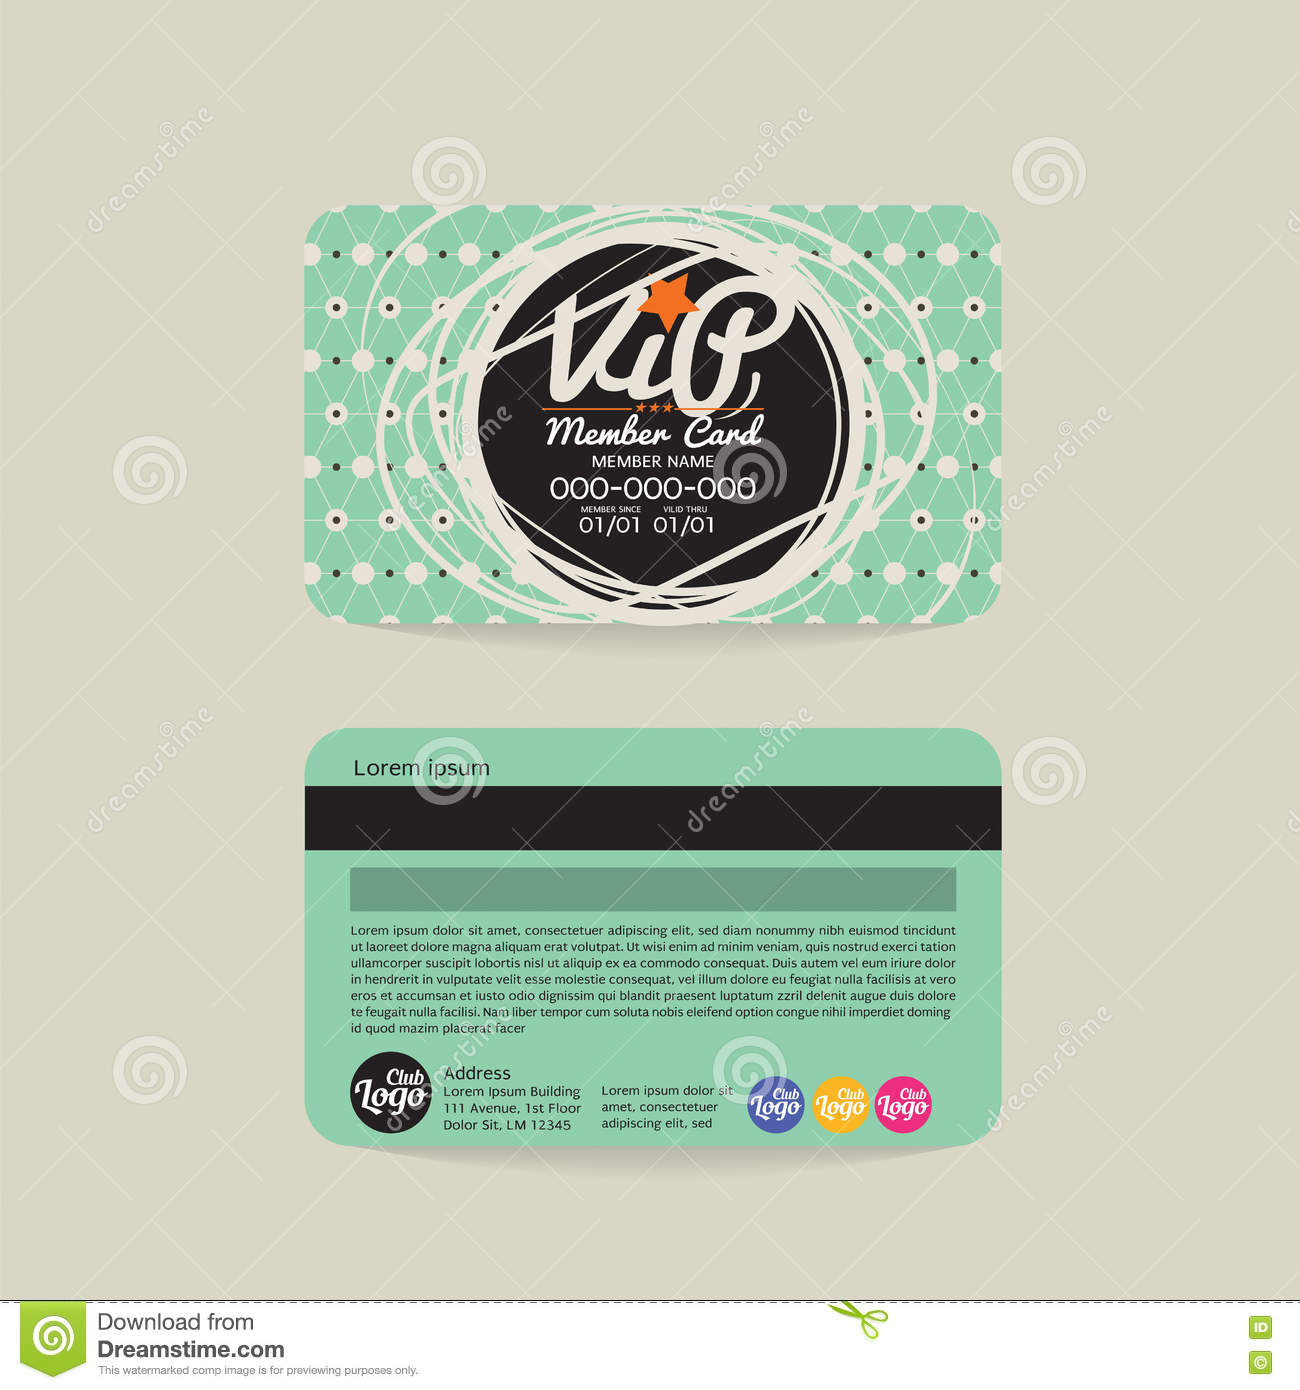 Front And Back VIP Member Card Template. Illustration, Design.  Membership Card Template